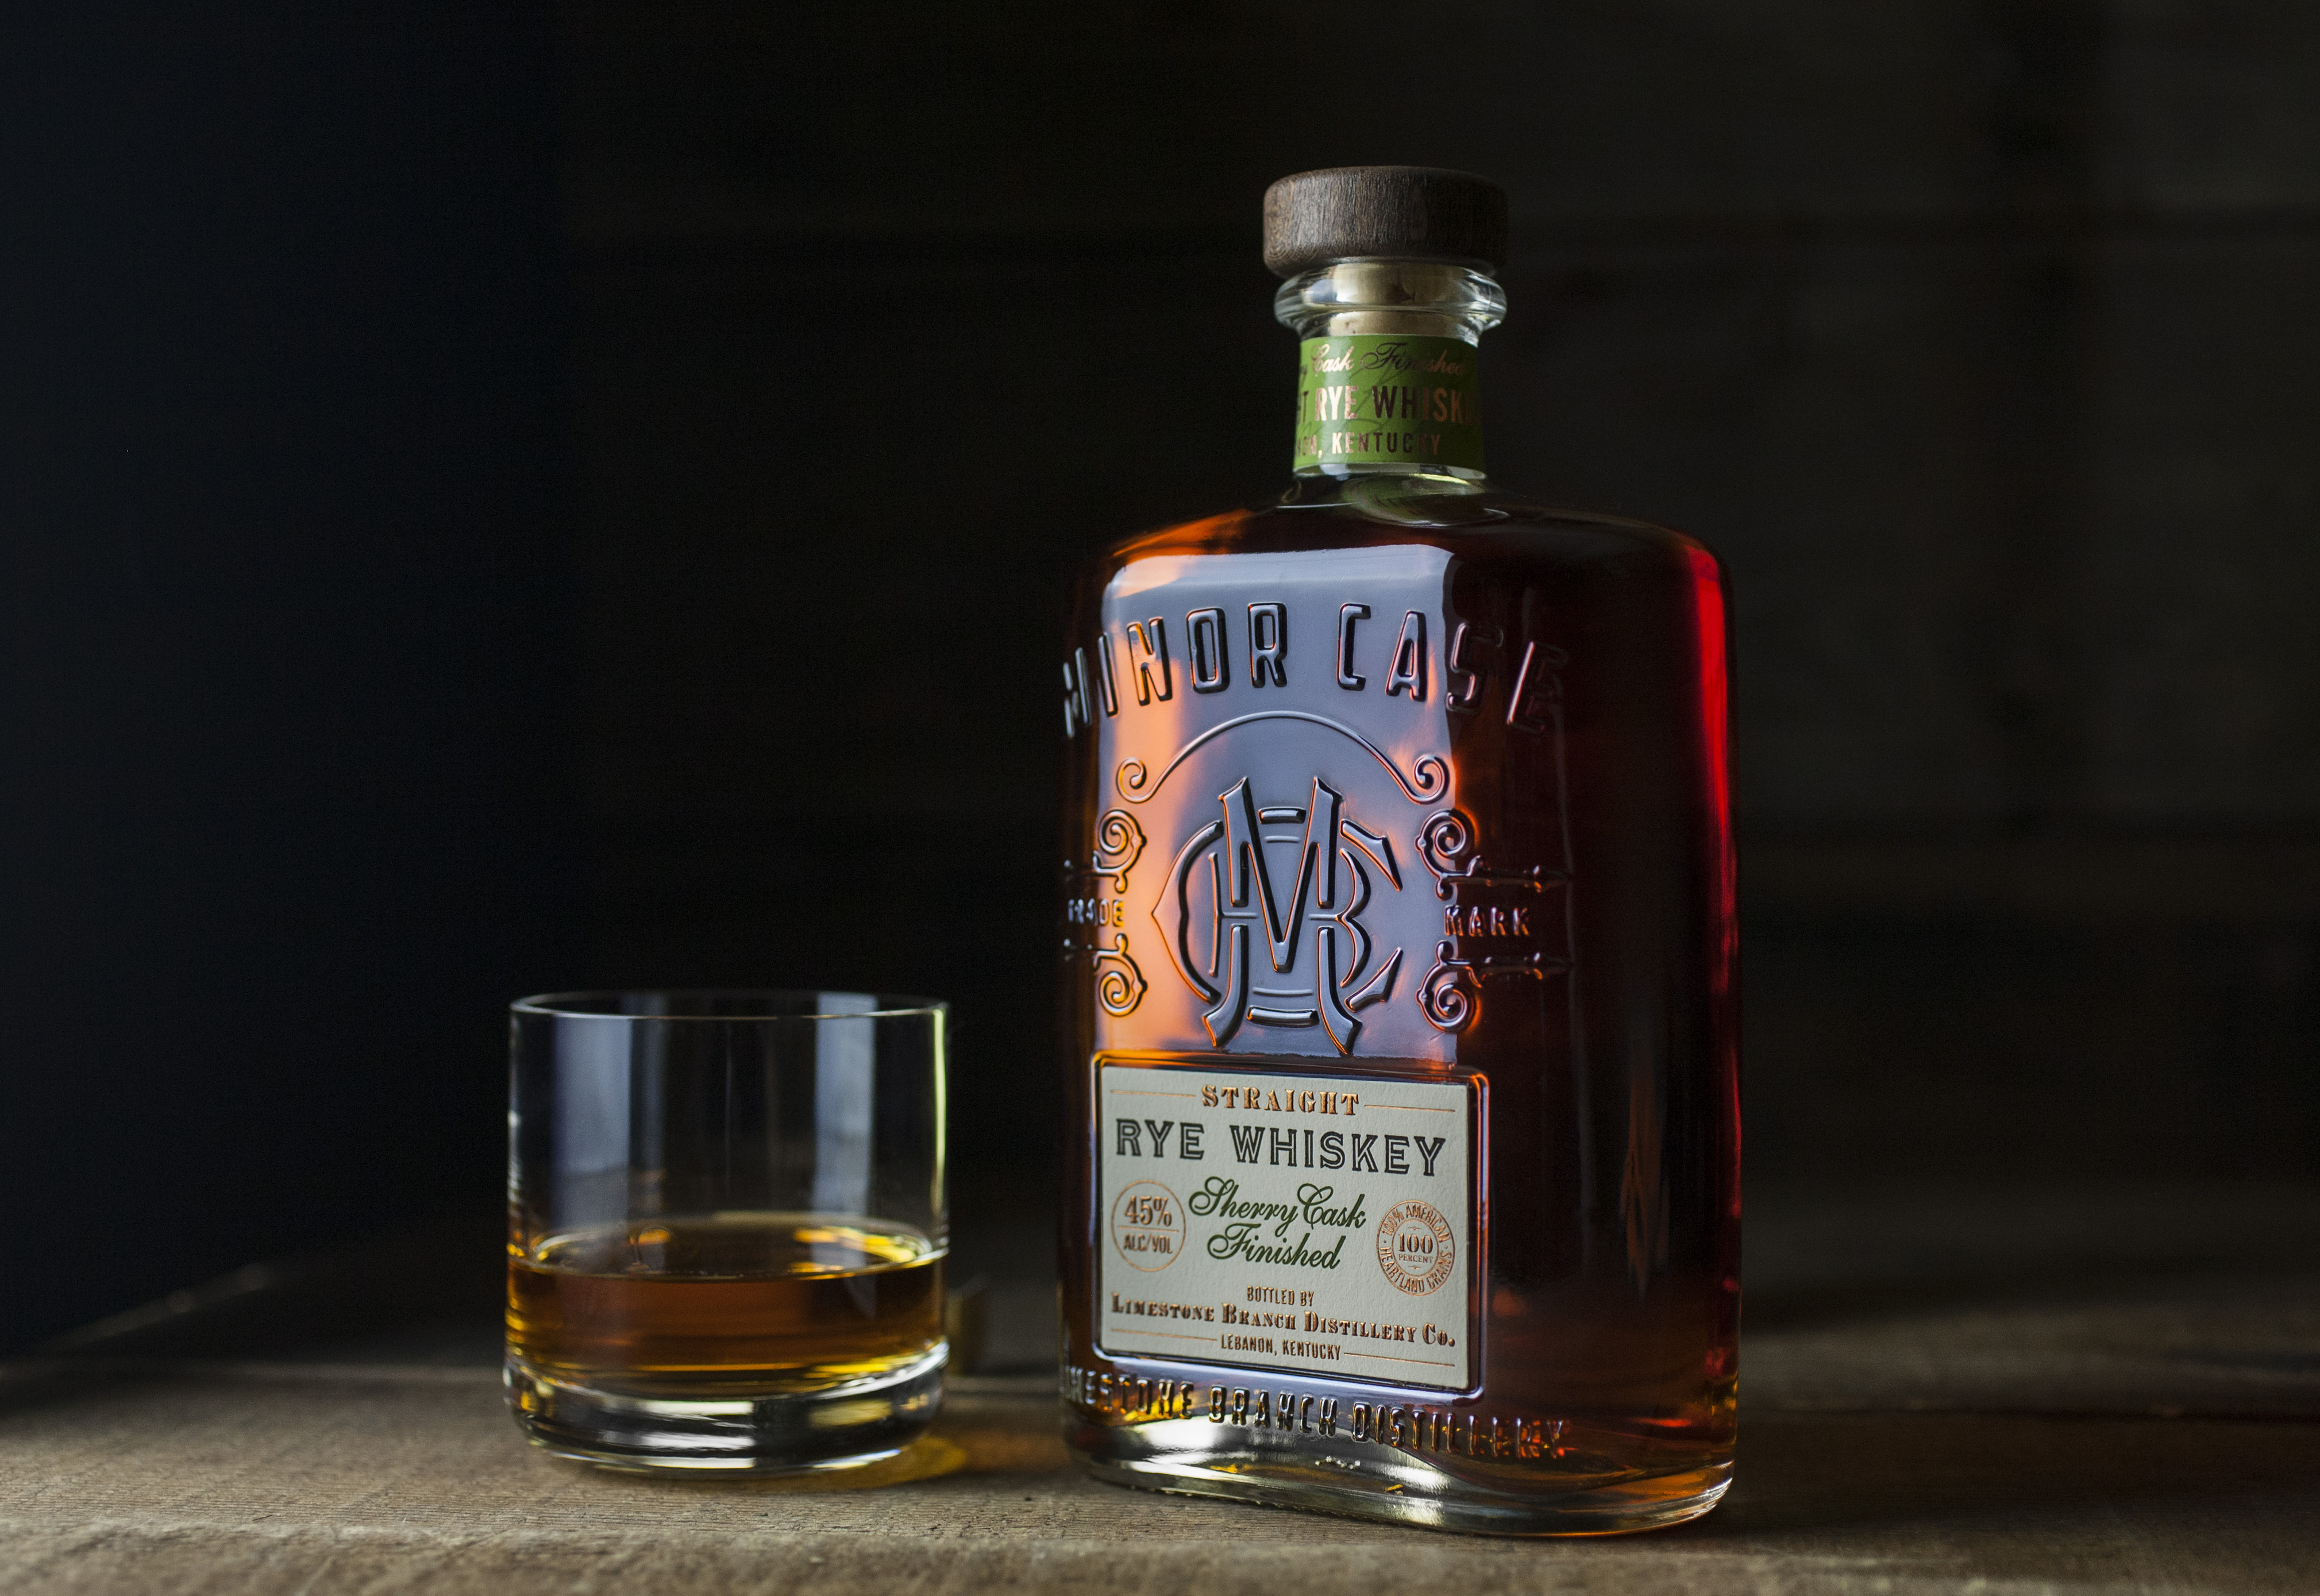 Limestone Branch Releases New Rye Whiskey - The Bourbon Review